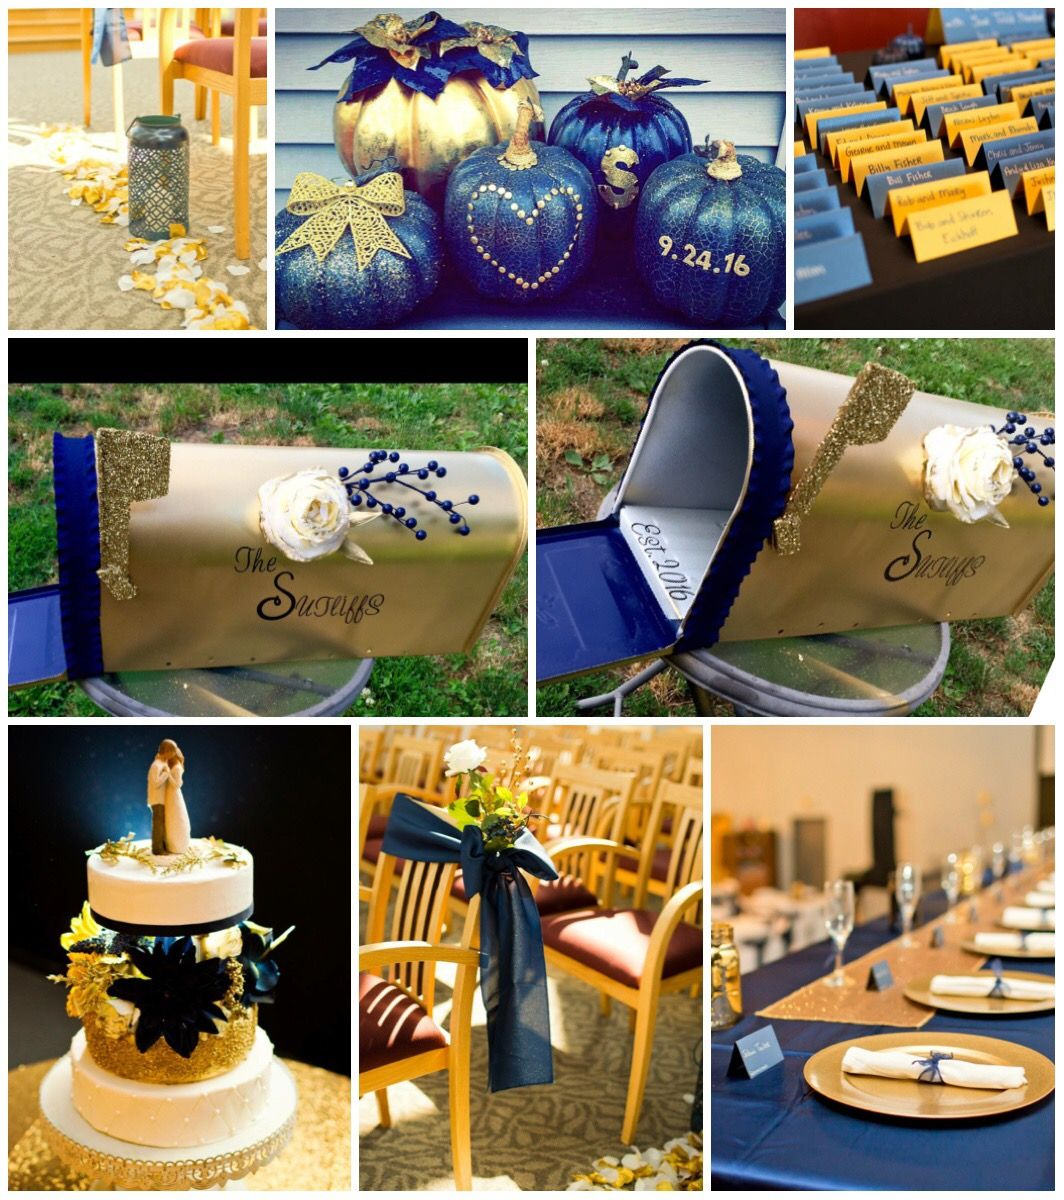 Do it yourself bride diy navy and gold fallseptember wedding spray painted walmart pumpkins transformed a yard sale mailbox into a wedding card holder card stock handwritten names cards homemade fake styrofoam solutioingenieria Image collections